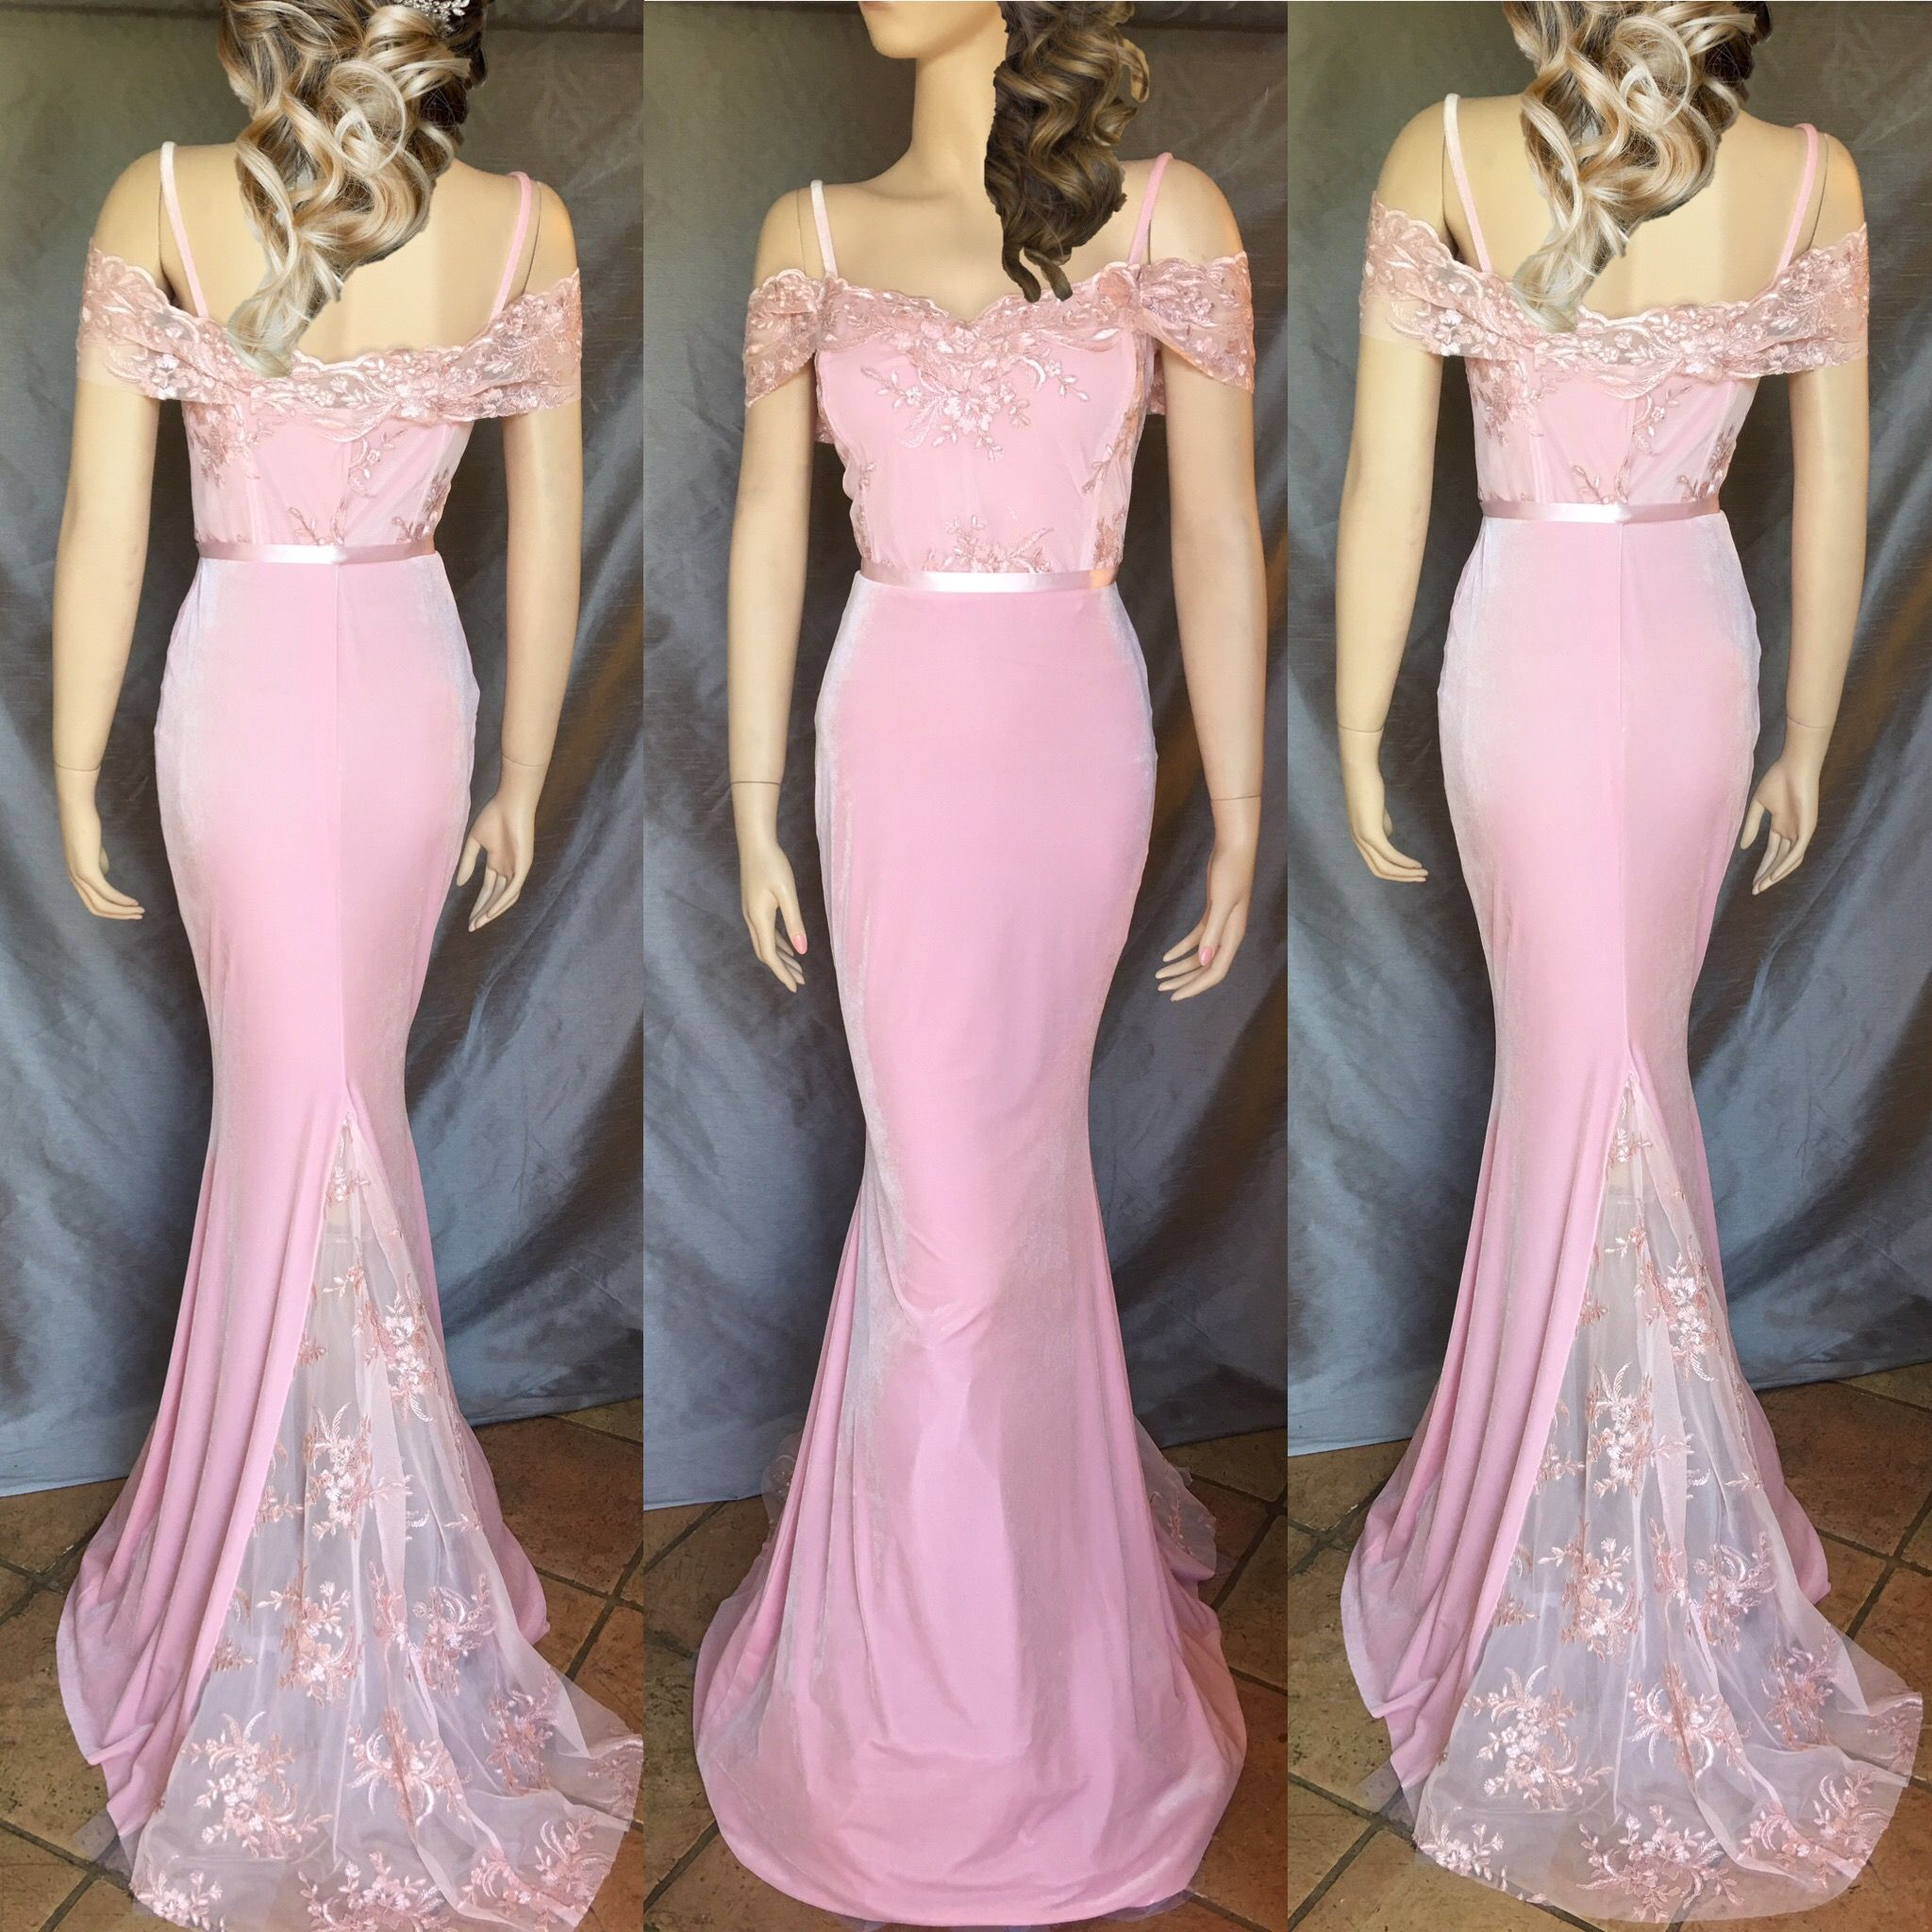 161ef8e5956 Lace Mermaid Style Bridesmaids Dress Prom Dress Open Back Handmade in  California by VanelDesign- visit VanelDesign on ETSY- questions -  818-404-4904